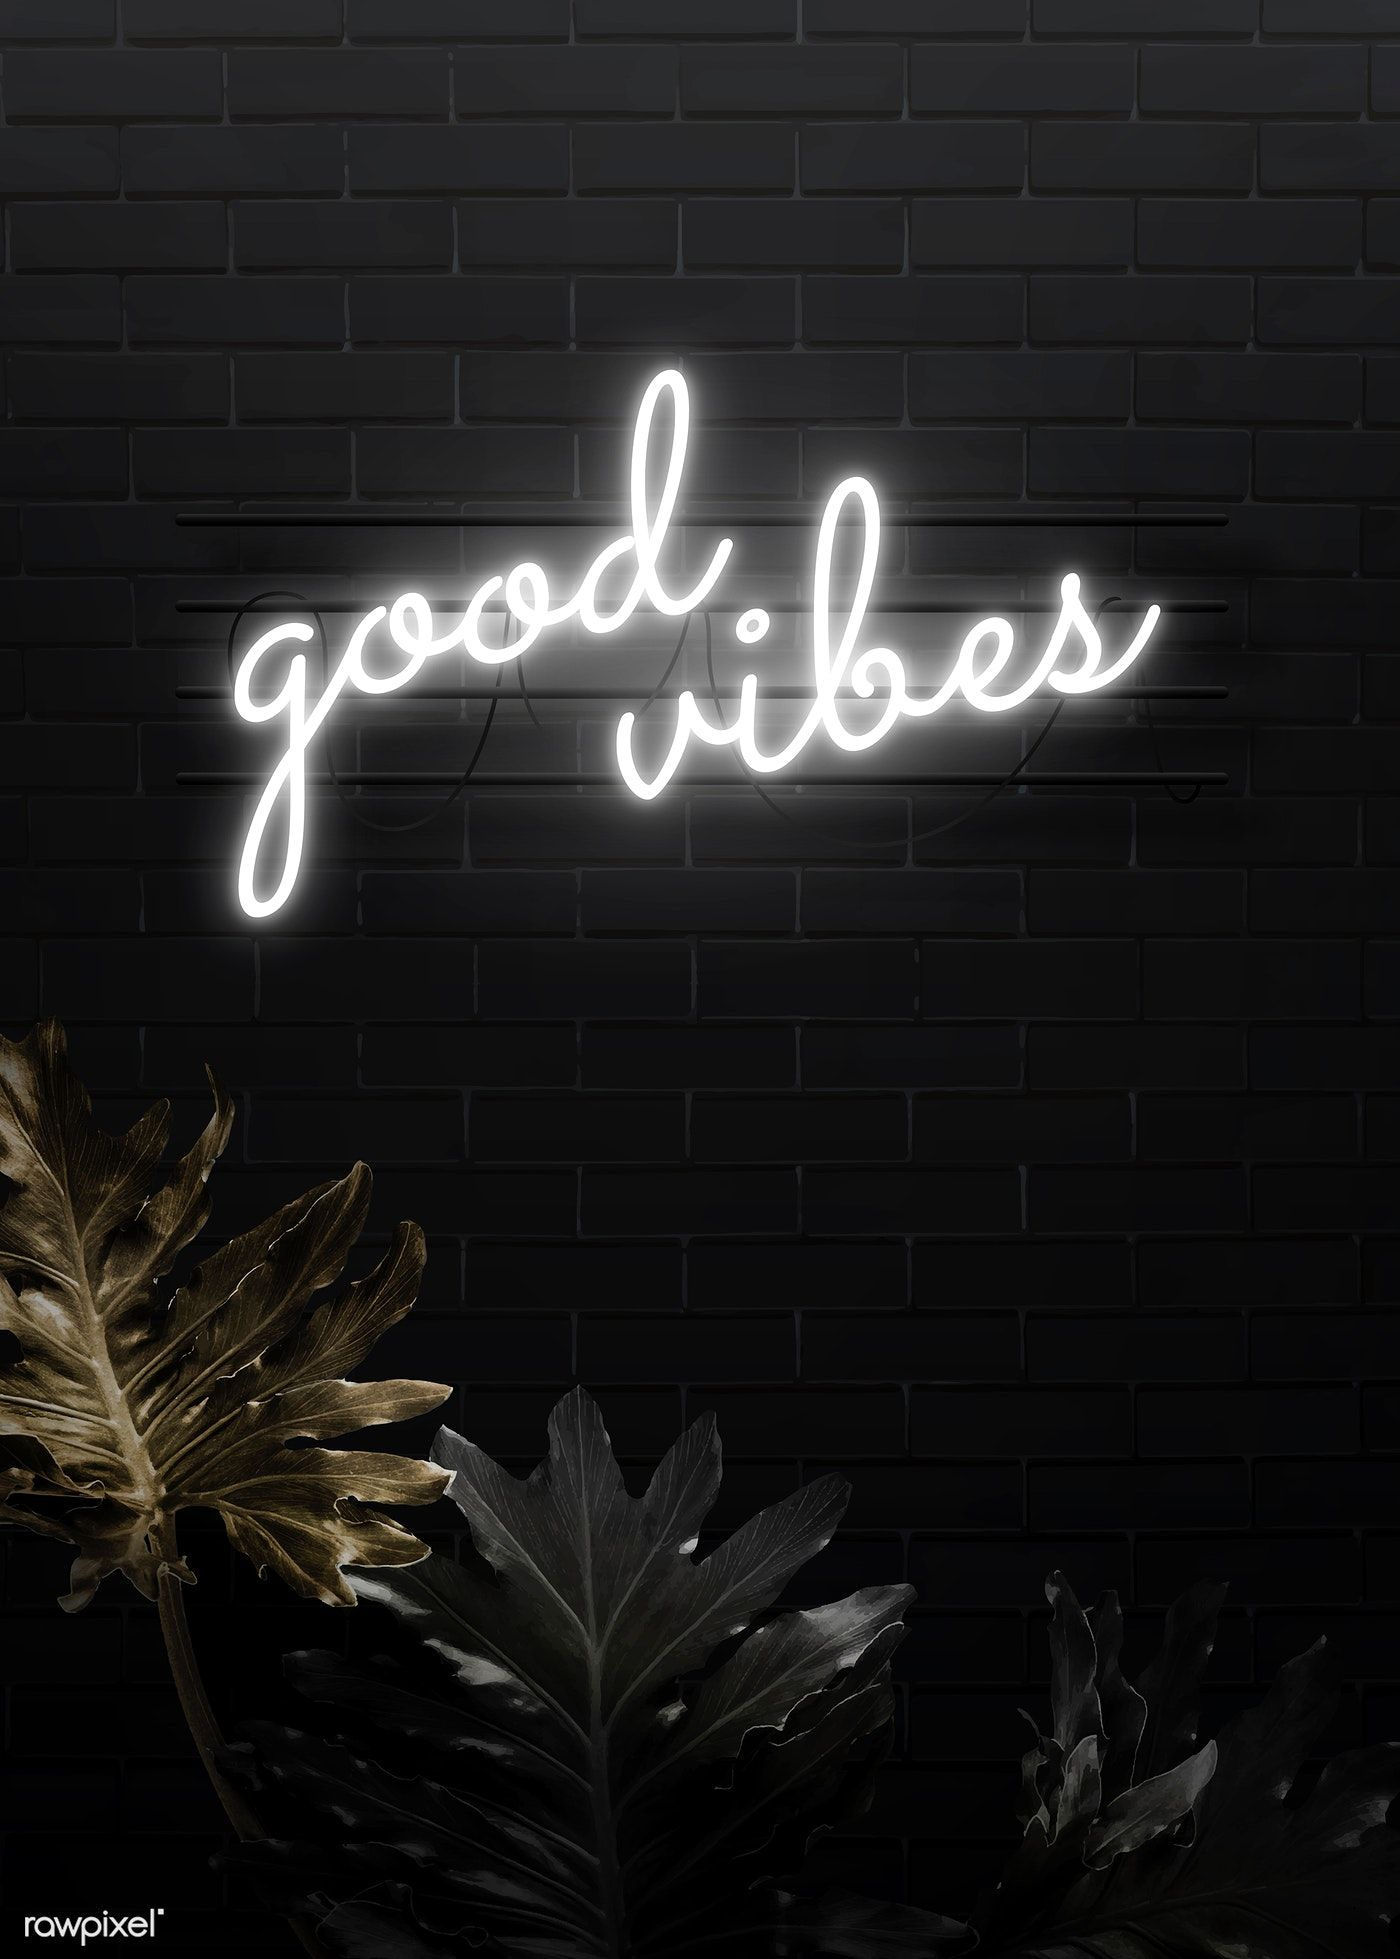 Download Premium Vector Of Good Vibes Neon Word On A Black Brick Wall Black And White Picture Wall Black Aesthetic Wallpaper Black Brick Wall